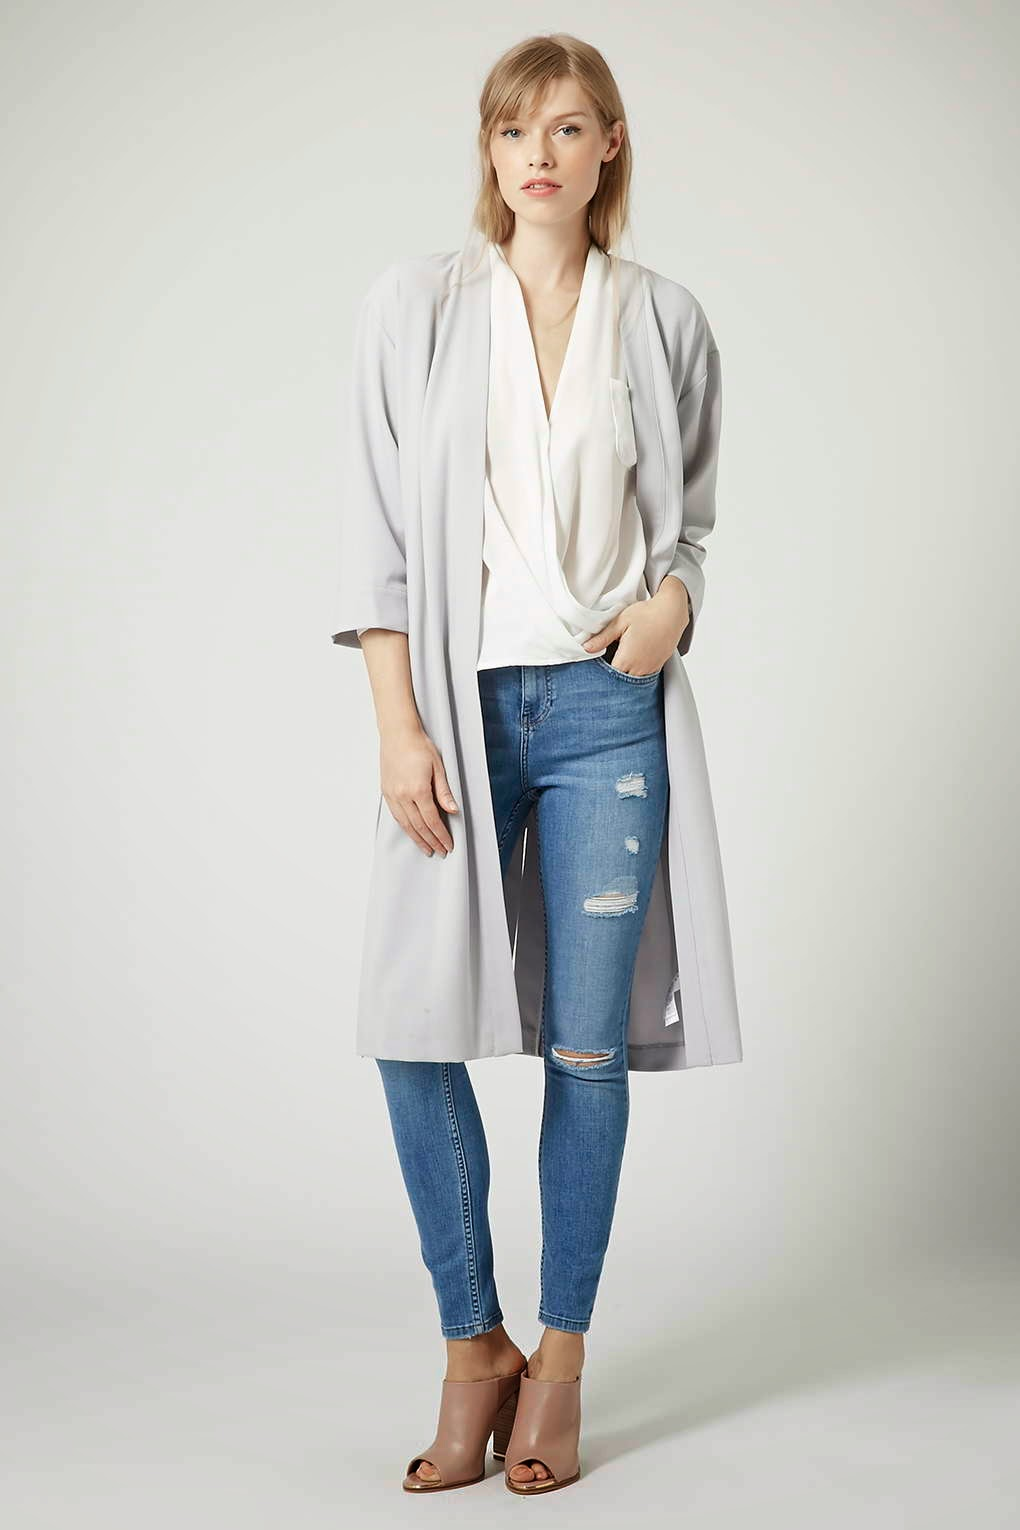 topshop grey duster coat, topshop grey jacket, topshop long grey jacket,